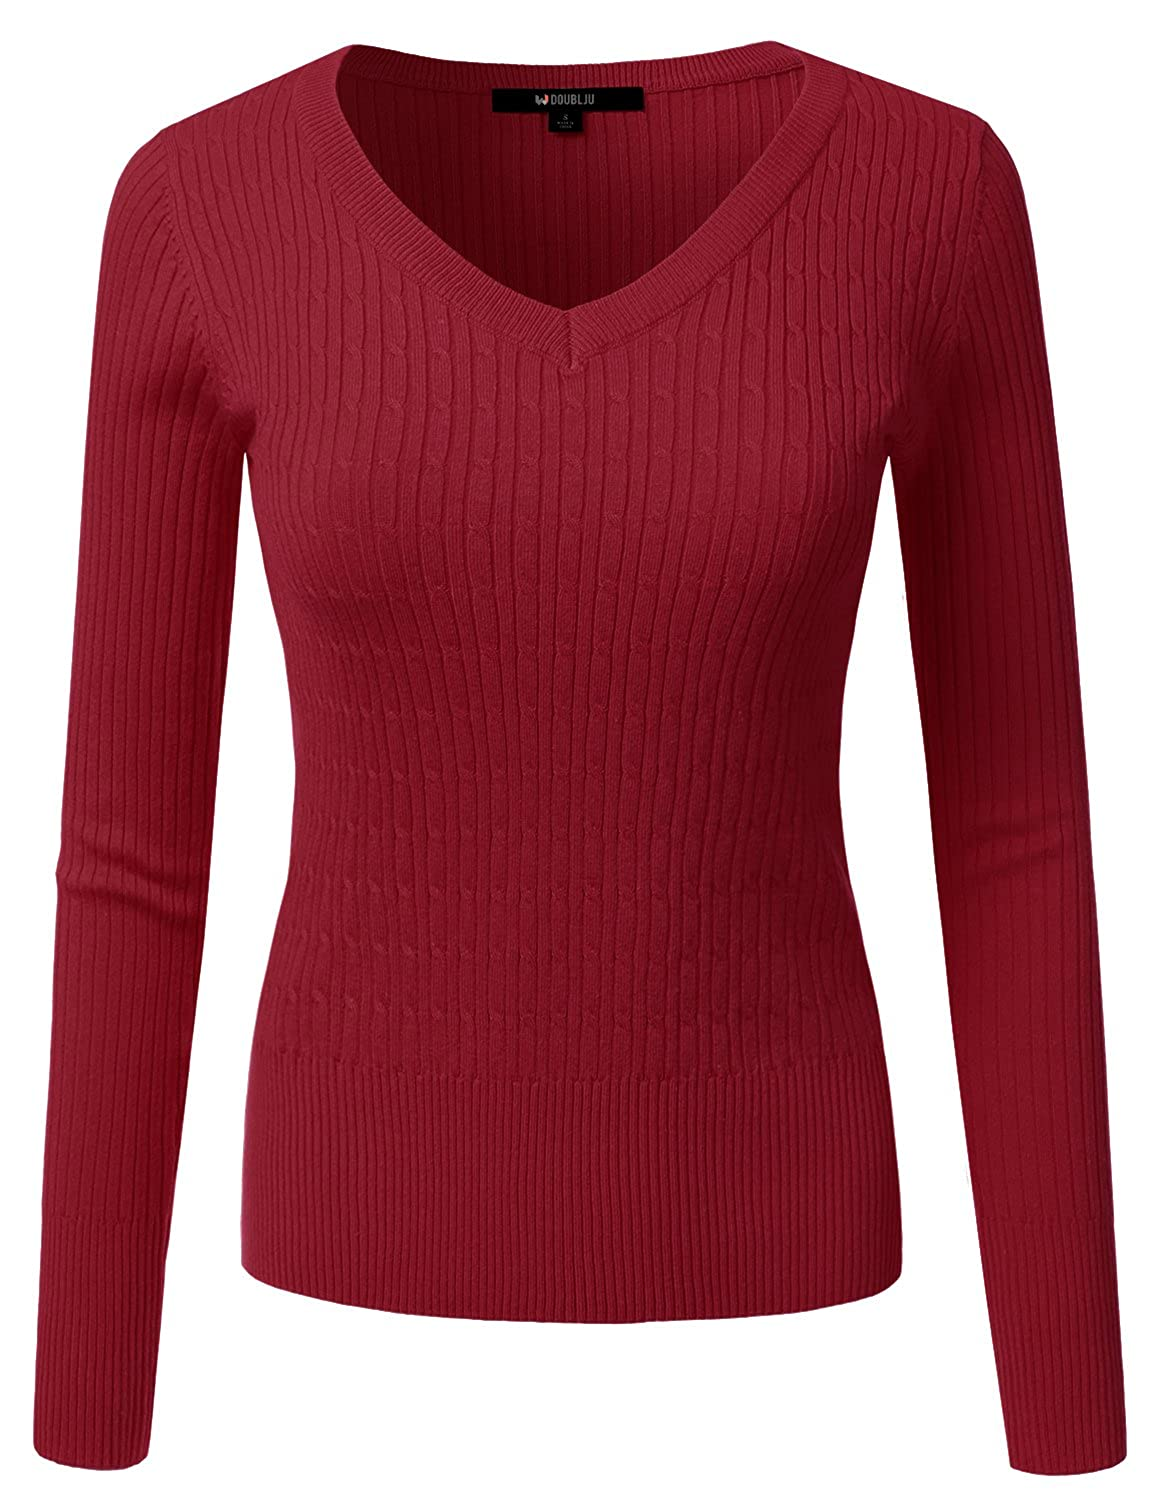 Awoswl0226_darkred Doublju Slim Fit Twisted Cable Knit VNeck Sweater For Women